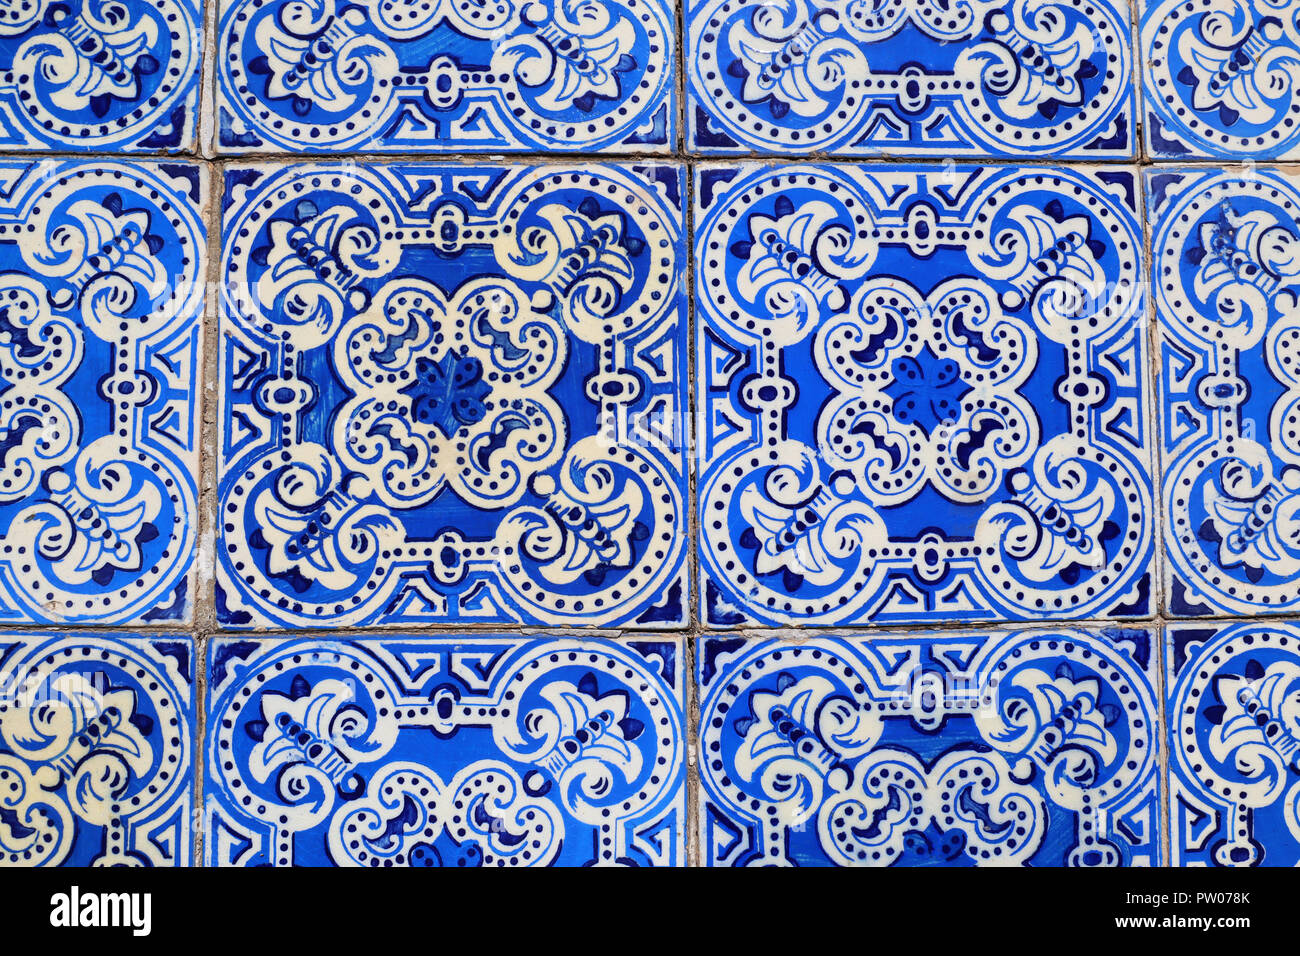 An abstract image of an Azulejos tile compilation found on a town house in Arganil, Portugal - Stock Image